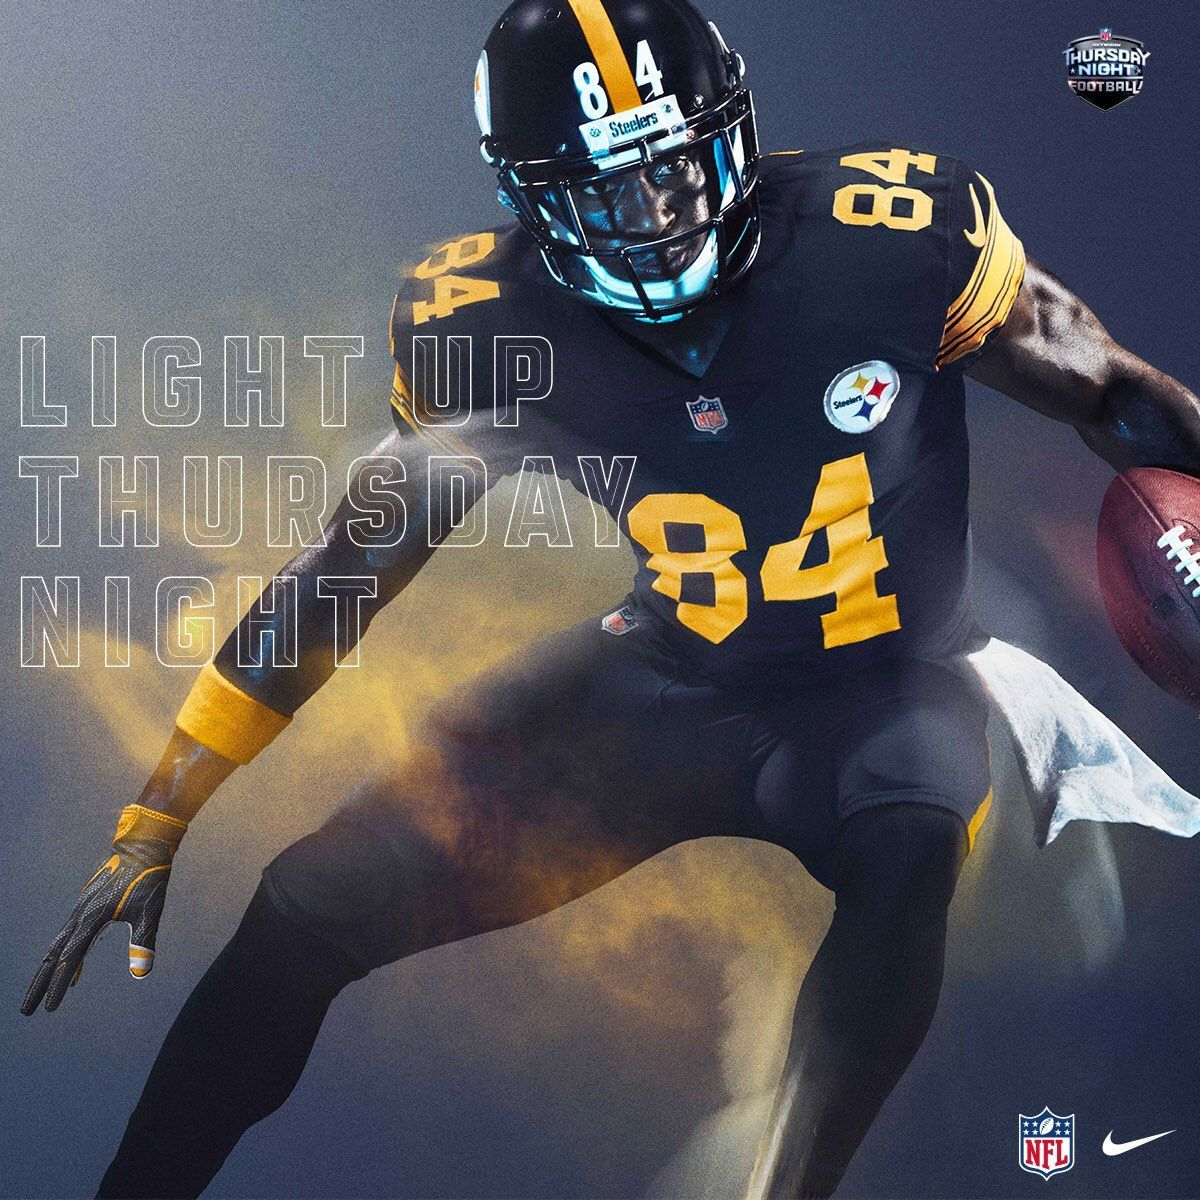 Steelers Color Wallpapers On WallpaperDog